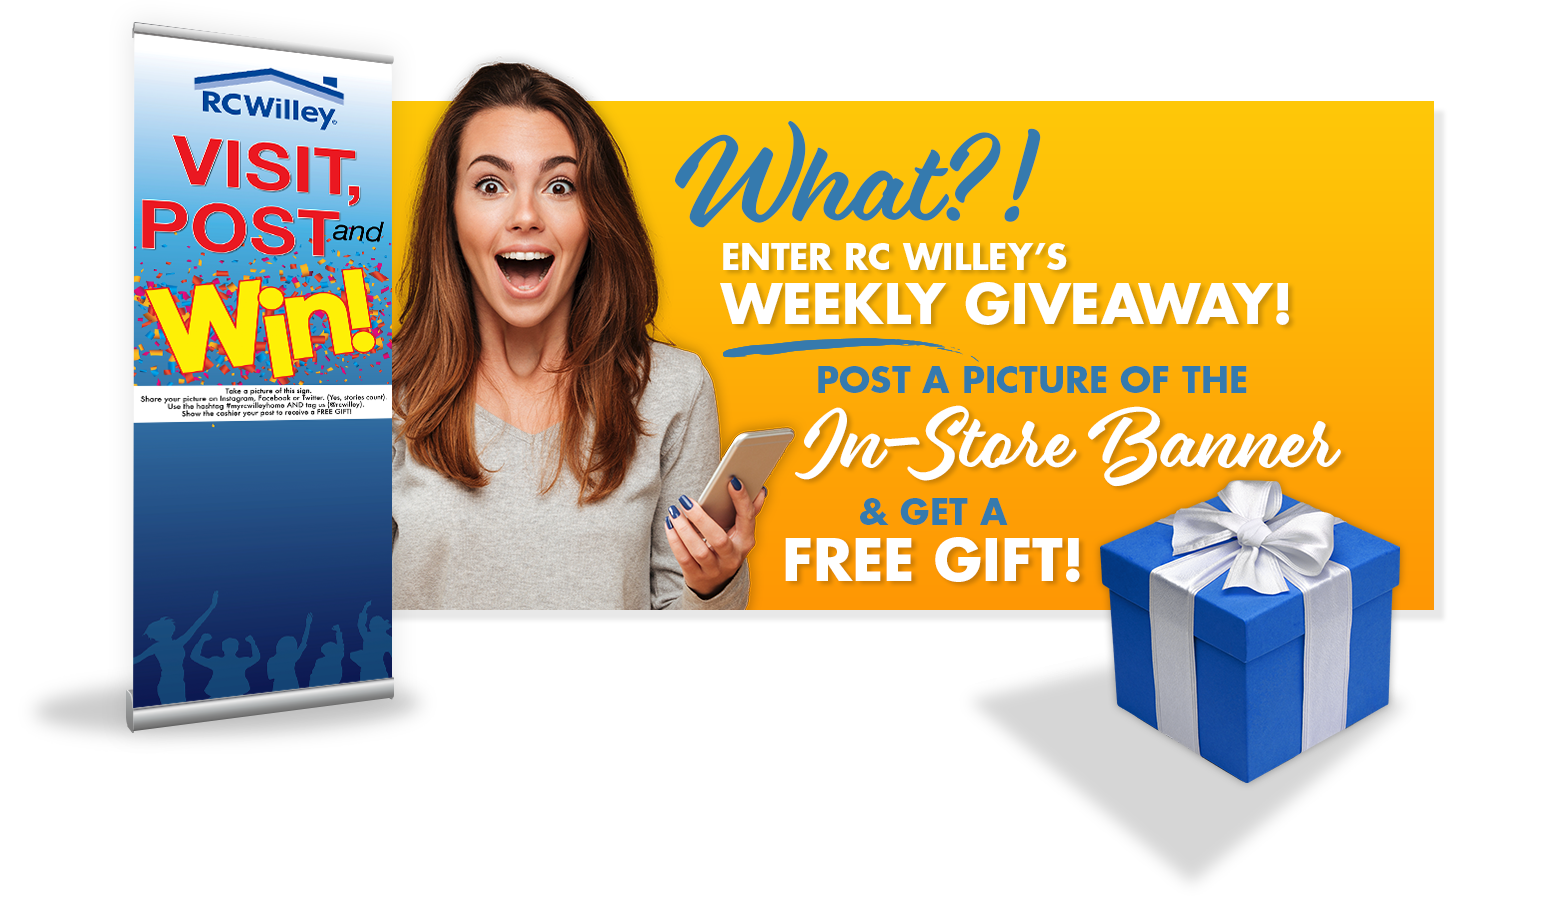 Enter RC Willey's weekly giveaway, post a picture of the in-store banner and get a free gift